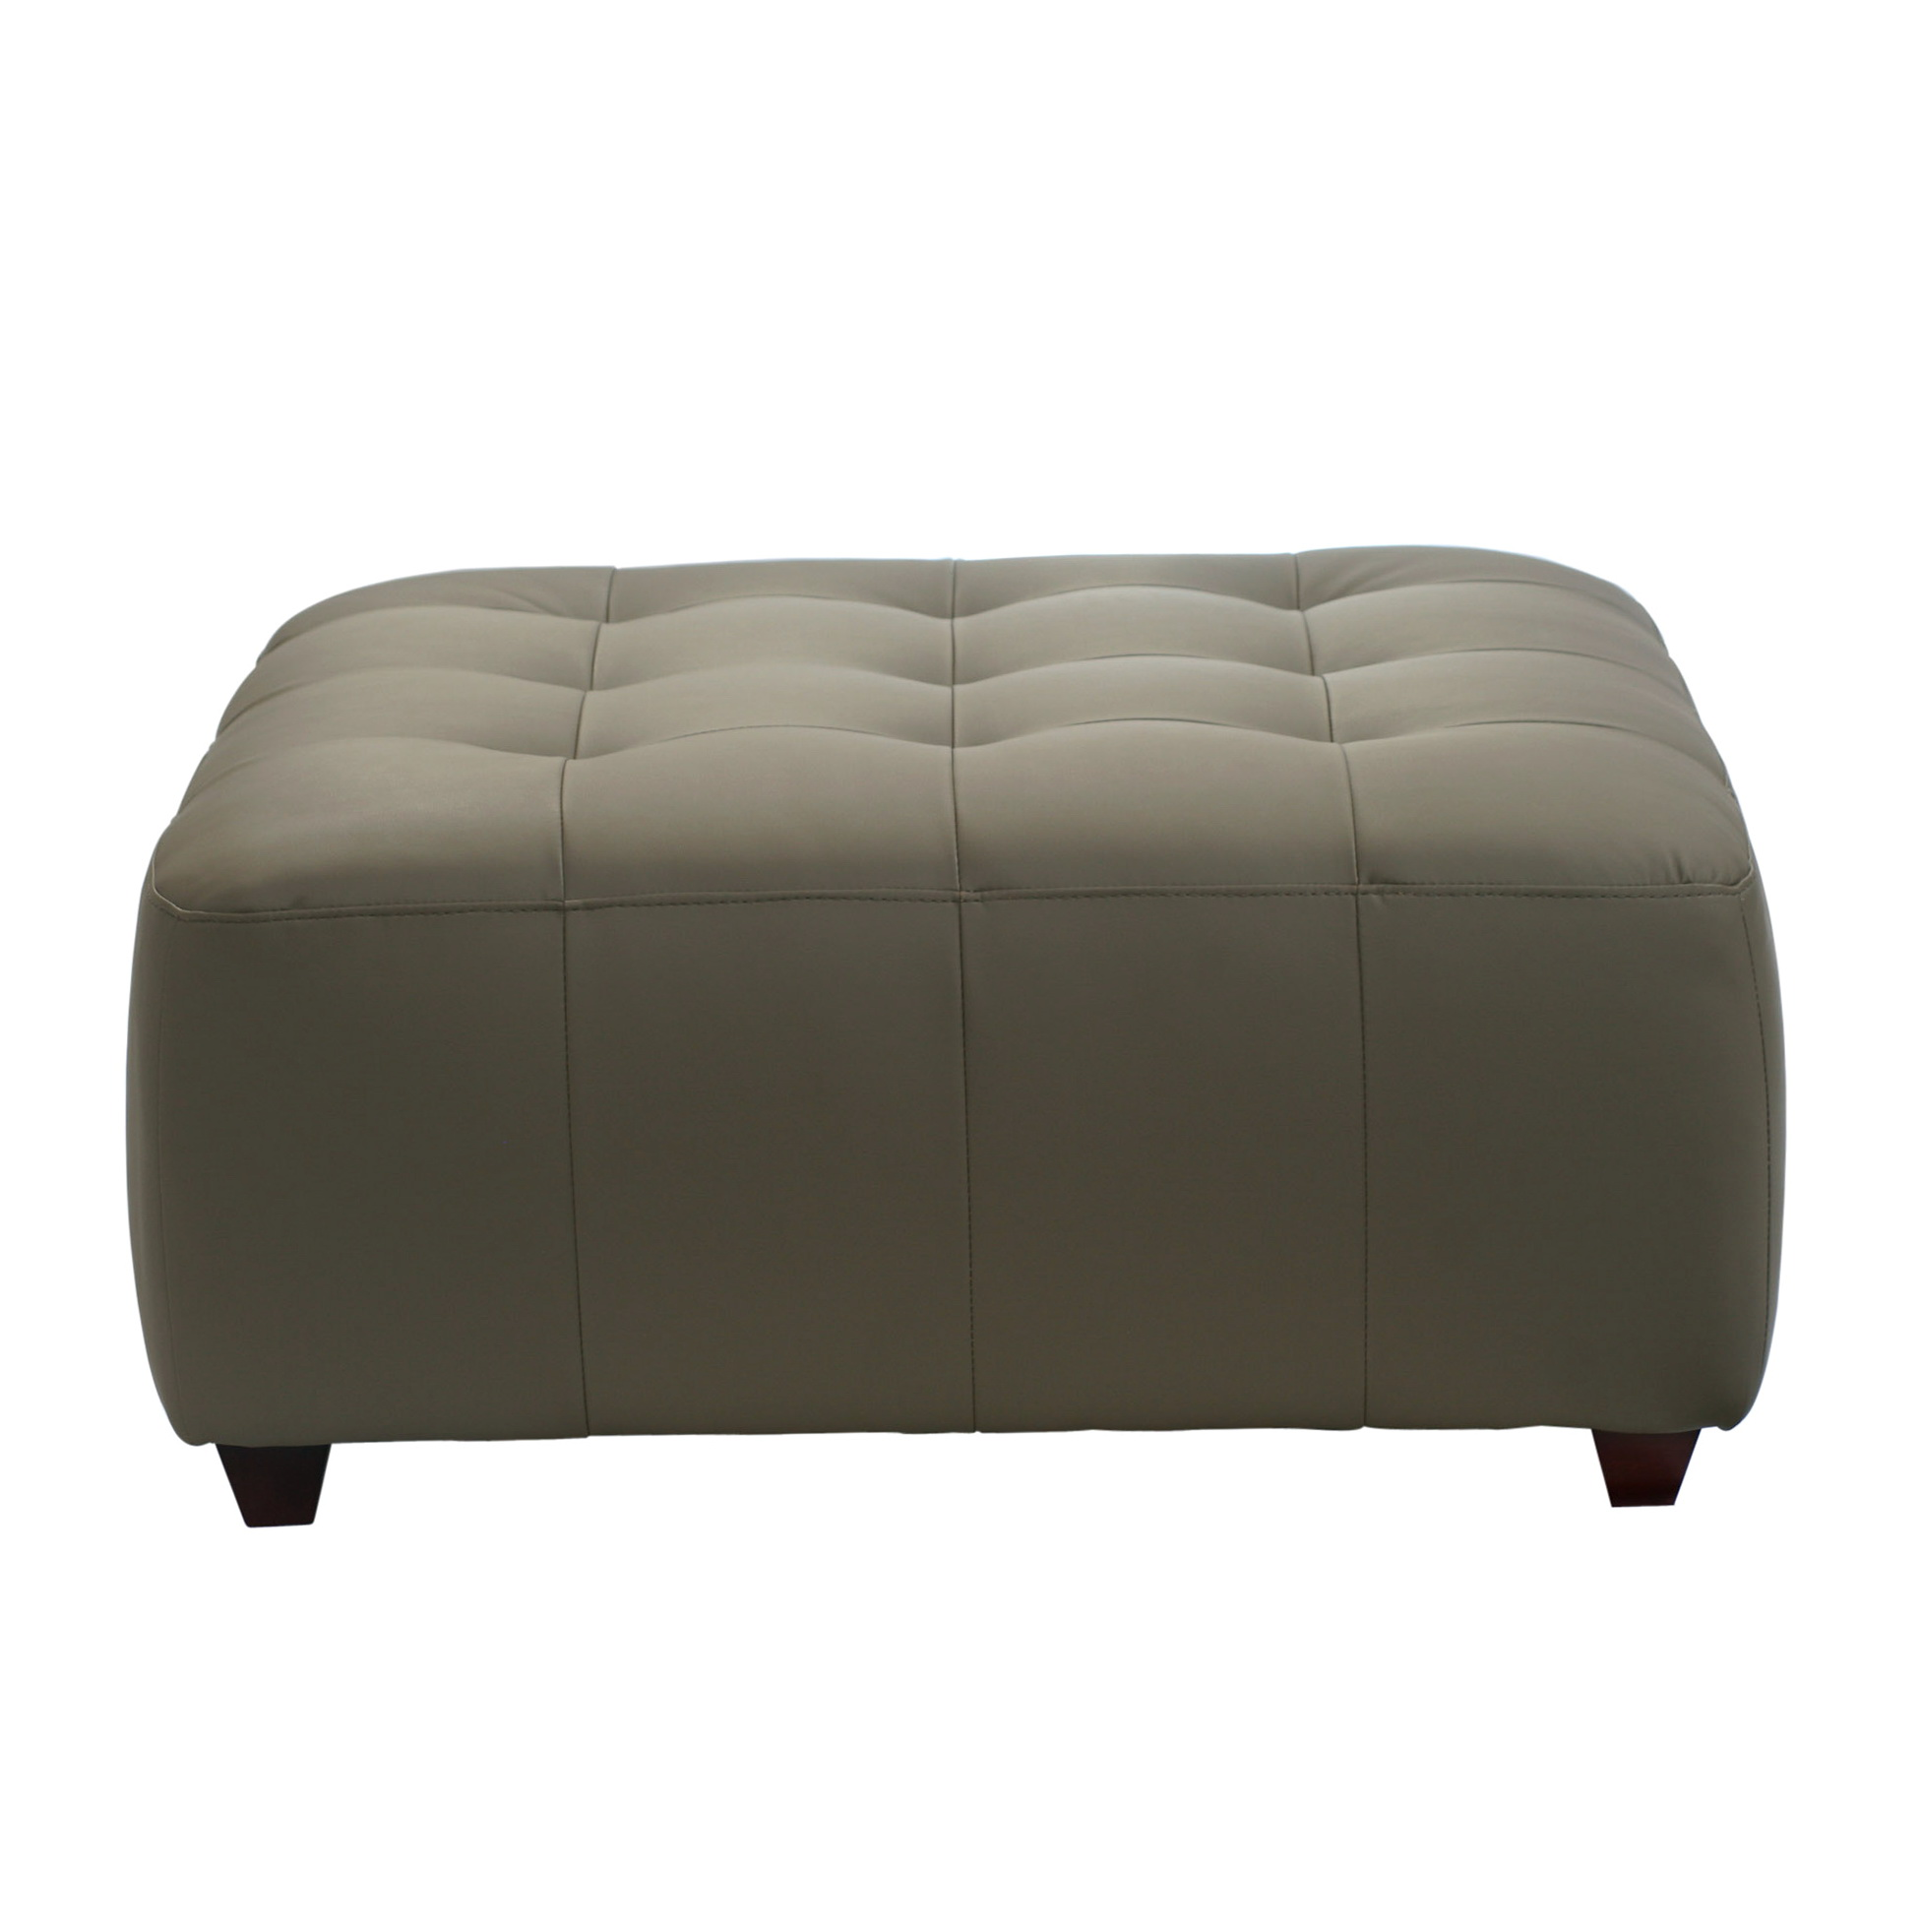 Square Leather Tufted Ottoman